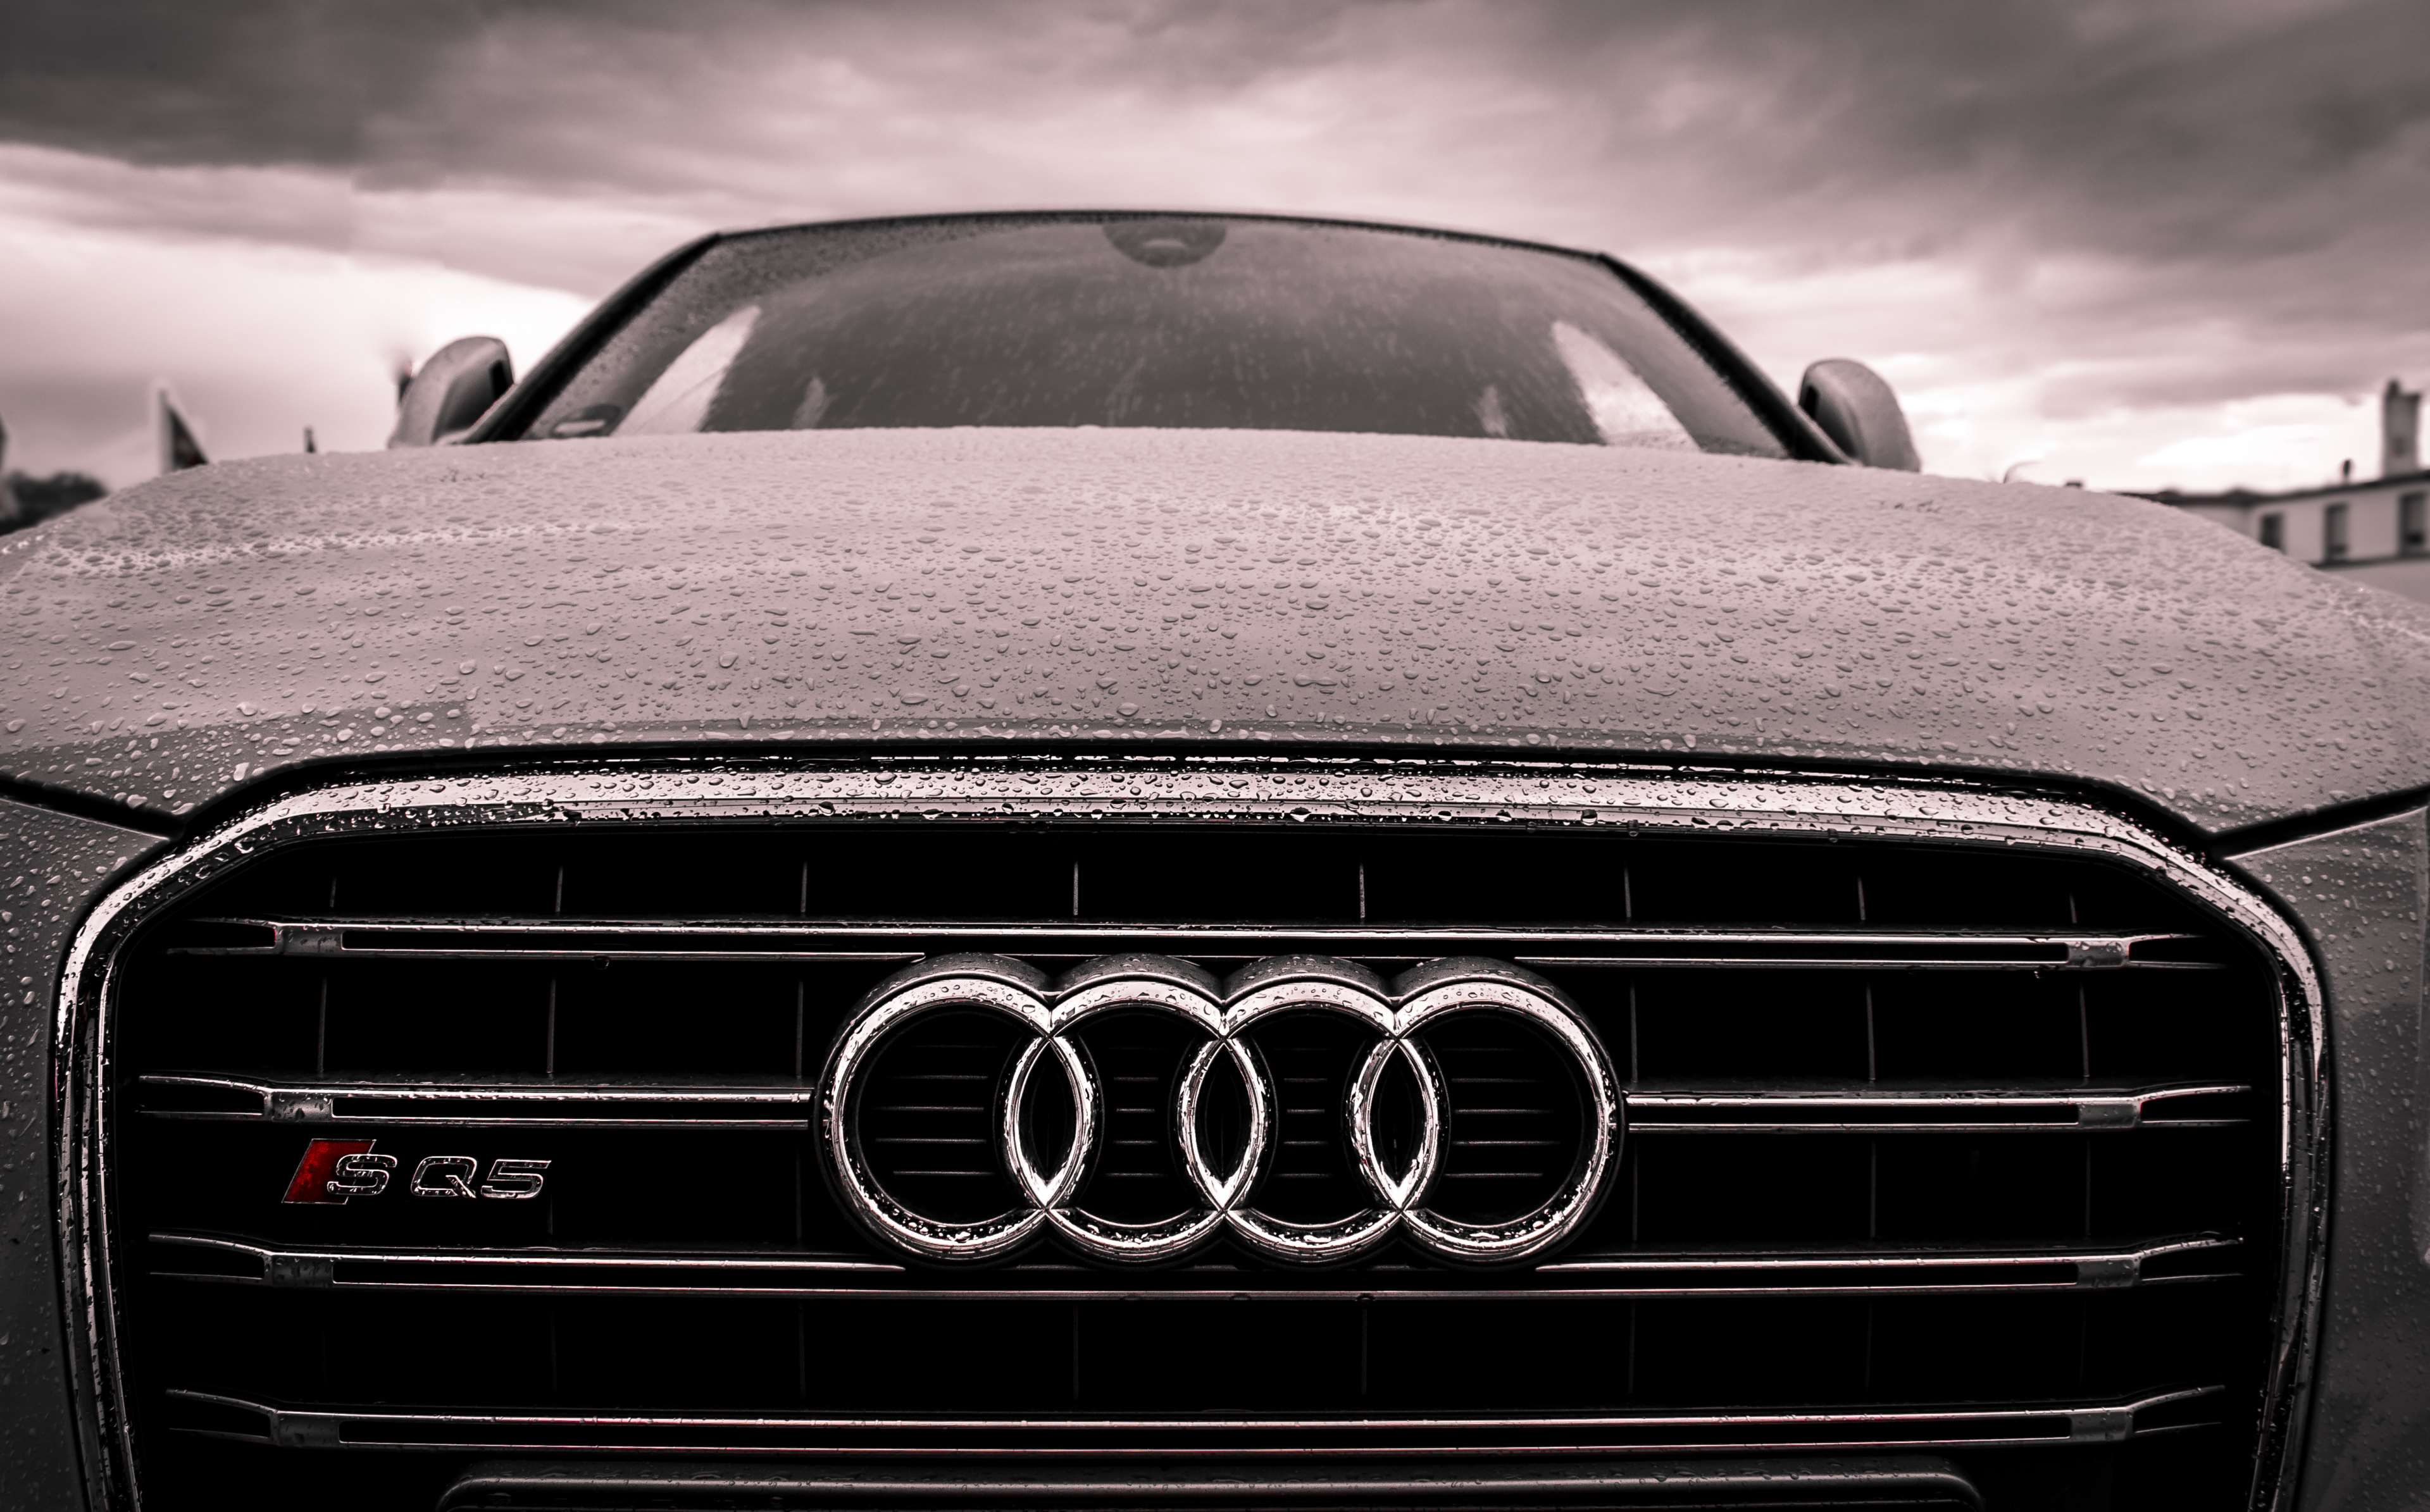 Full Hd Audi Car Wallpaper